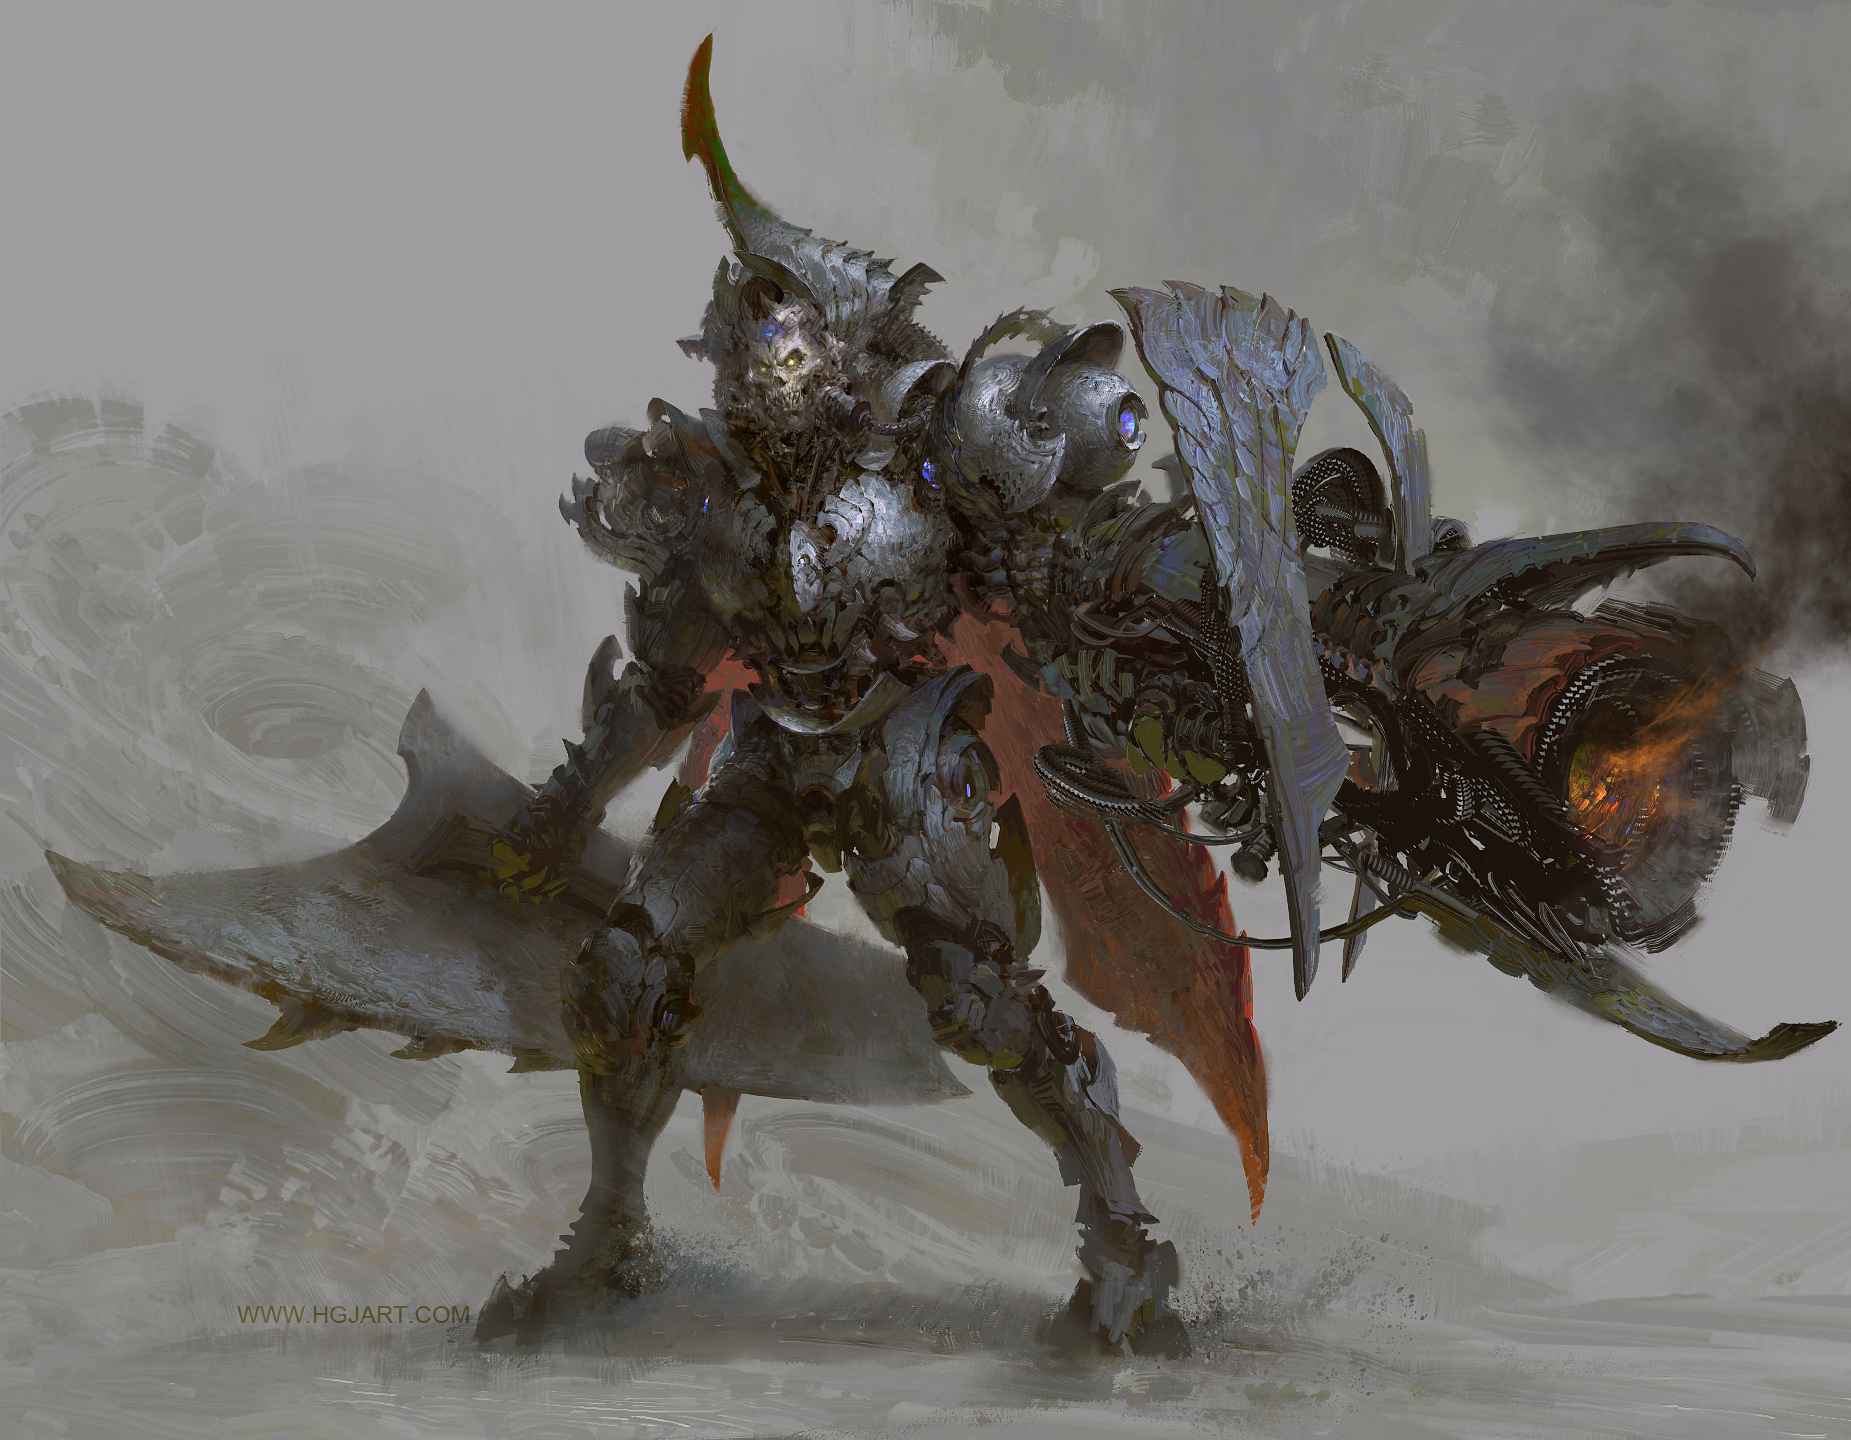 guangjian huang digital painting Concept art Knight squeletton